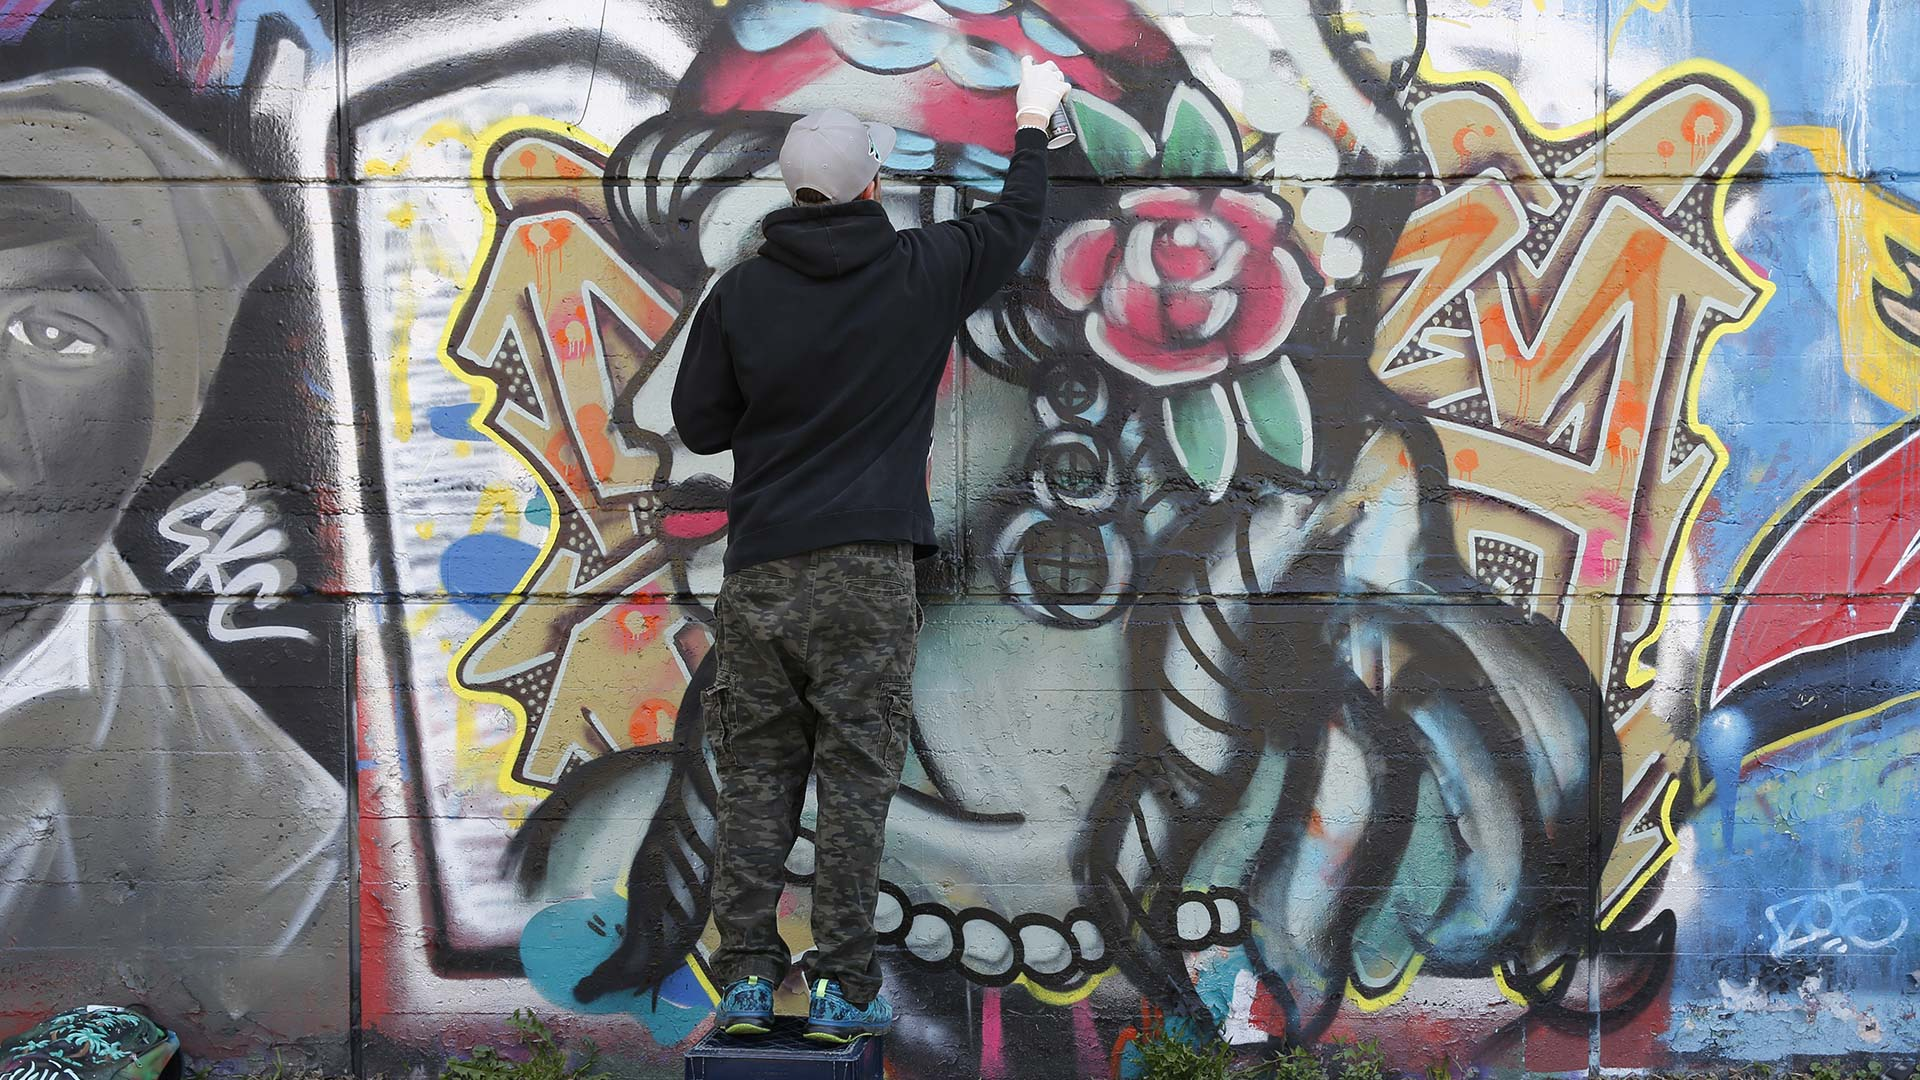 What it feels like to be a graffiti artist